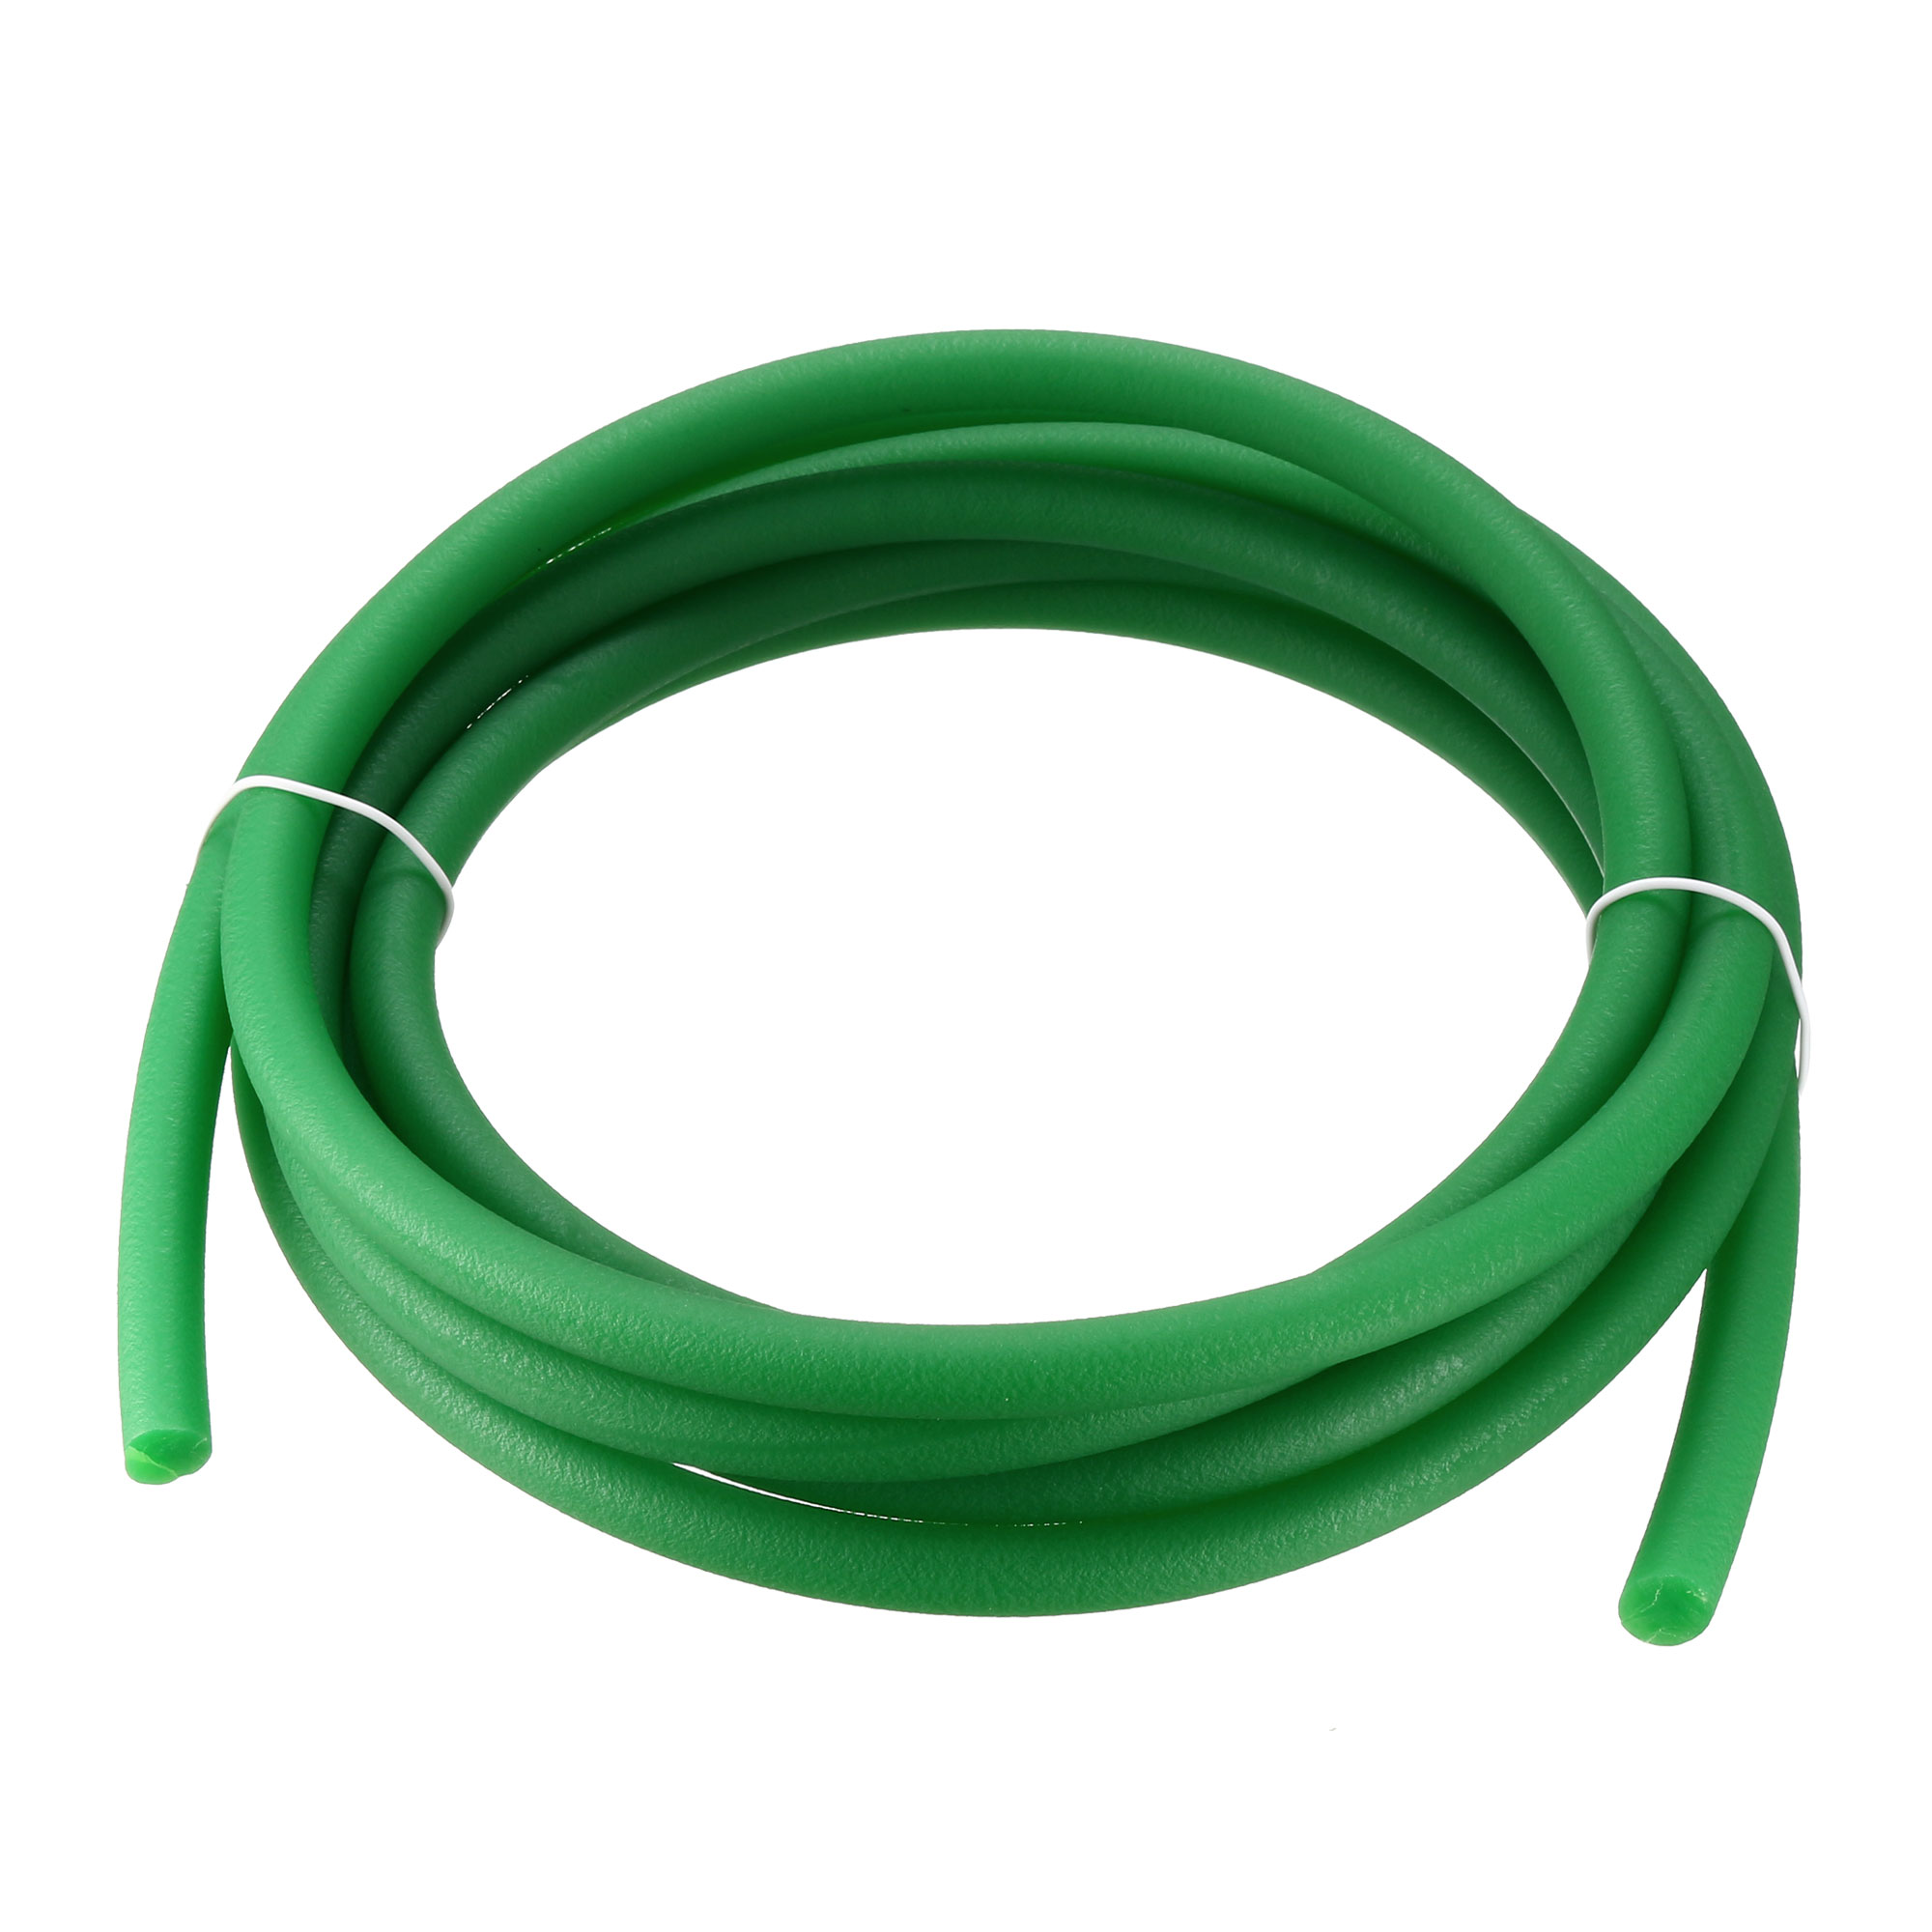 High-Performance Urethane Round Belting,2mm-20m PU Transmission Polyurethane Belt Green Rough Surface for Drive Transmission